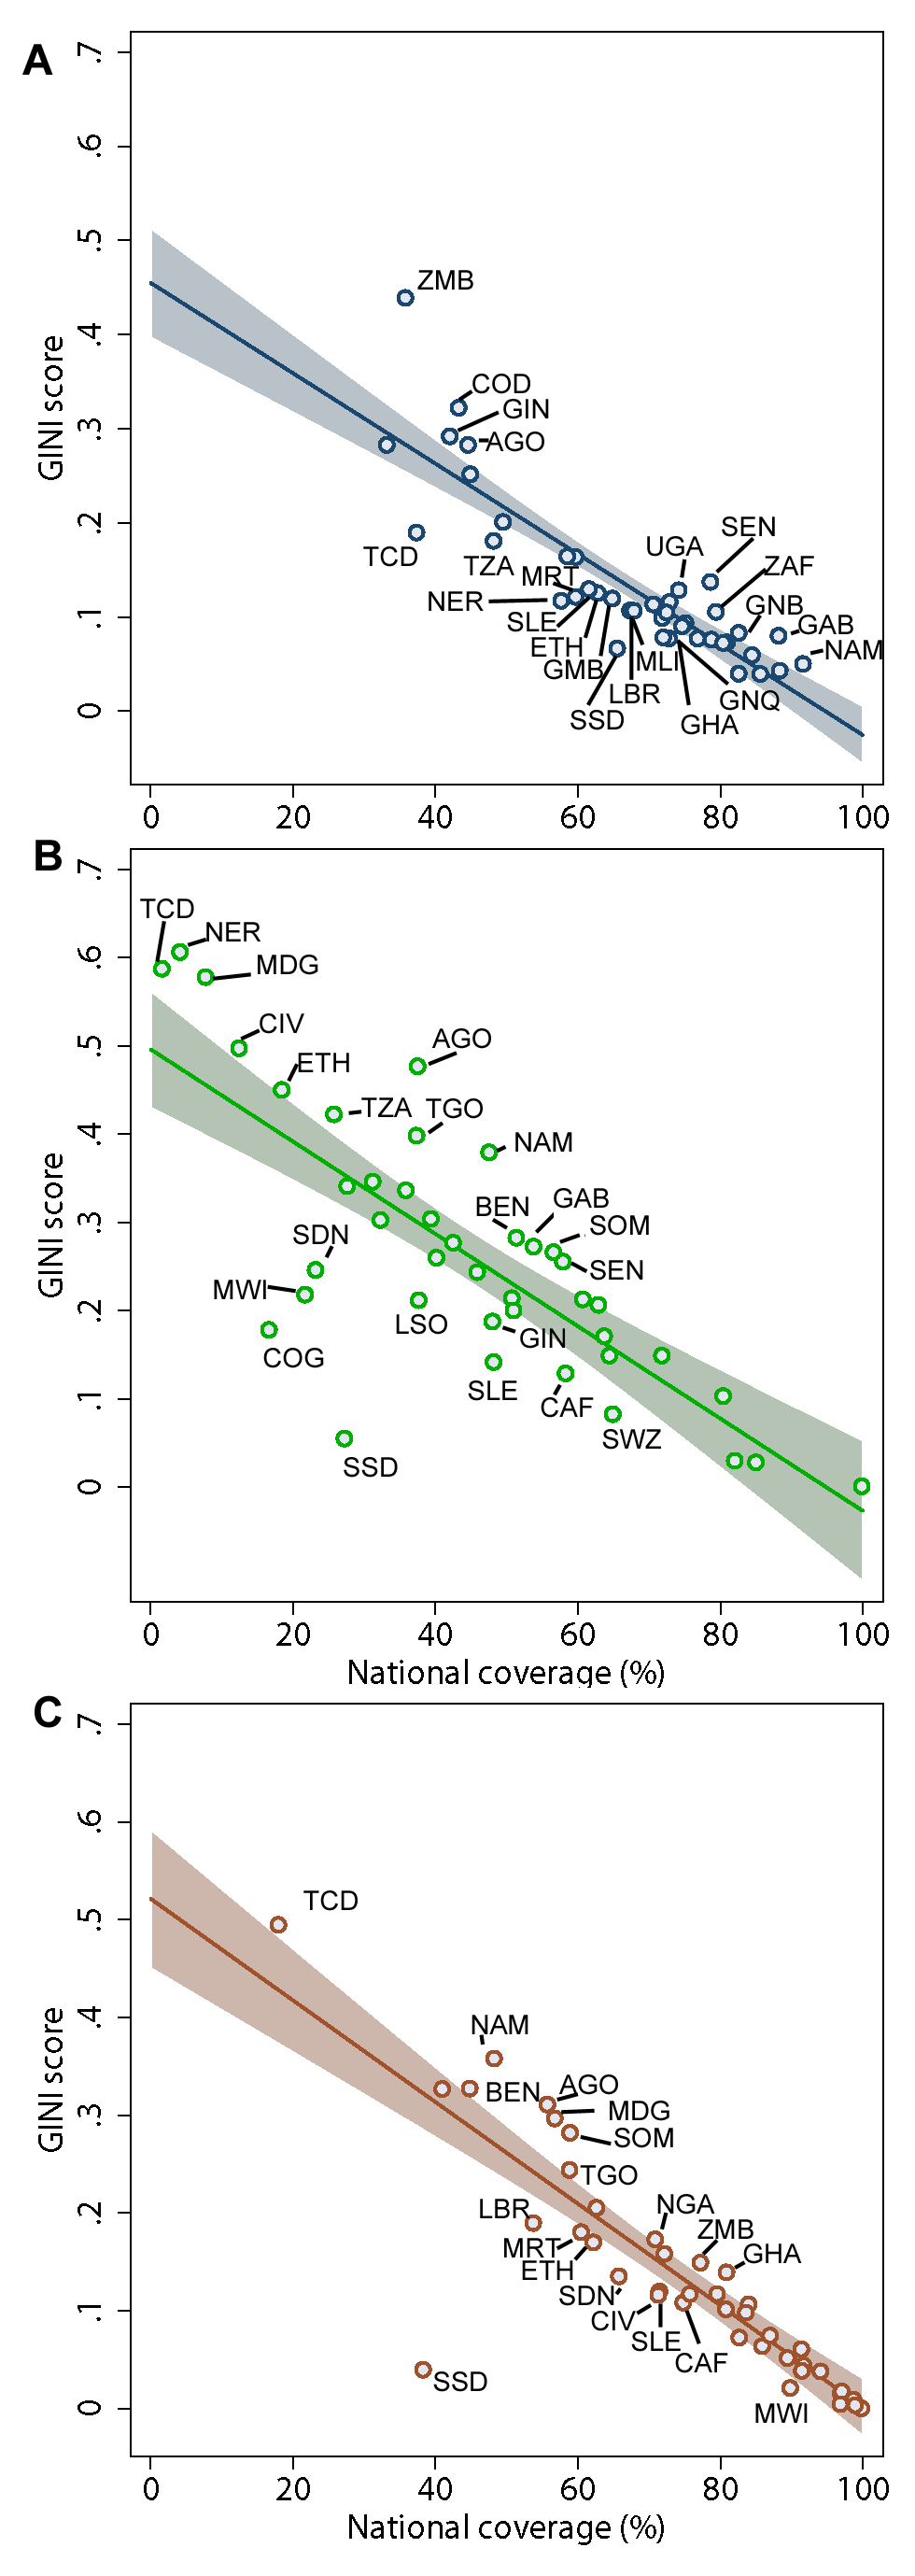 Empirical relationship between inequality (GINI score) as a function of national coverage.